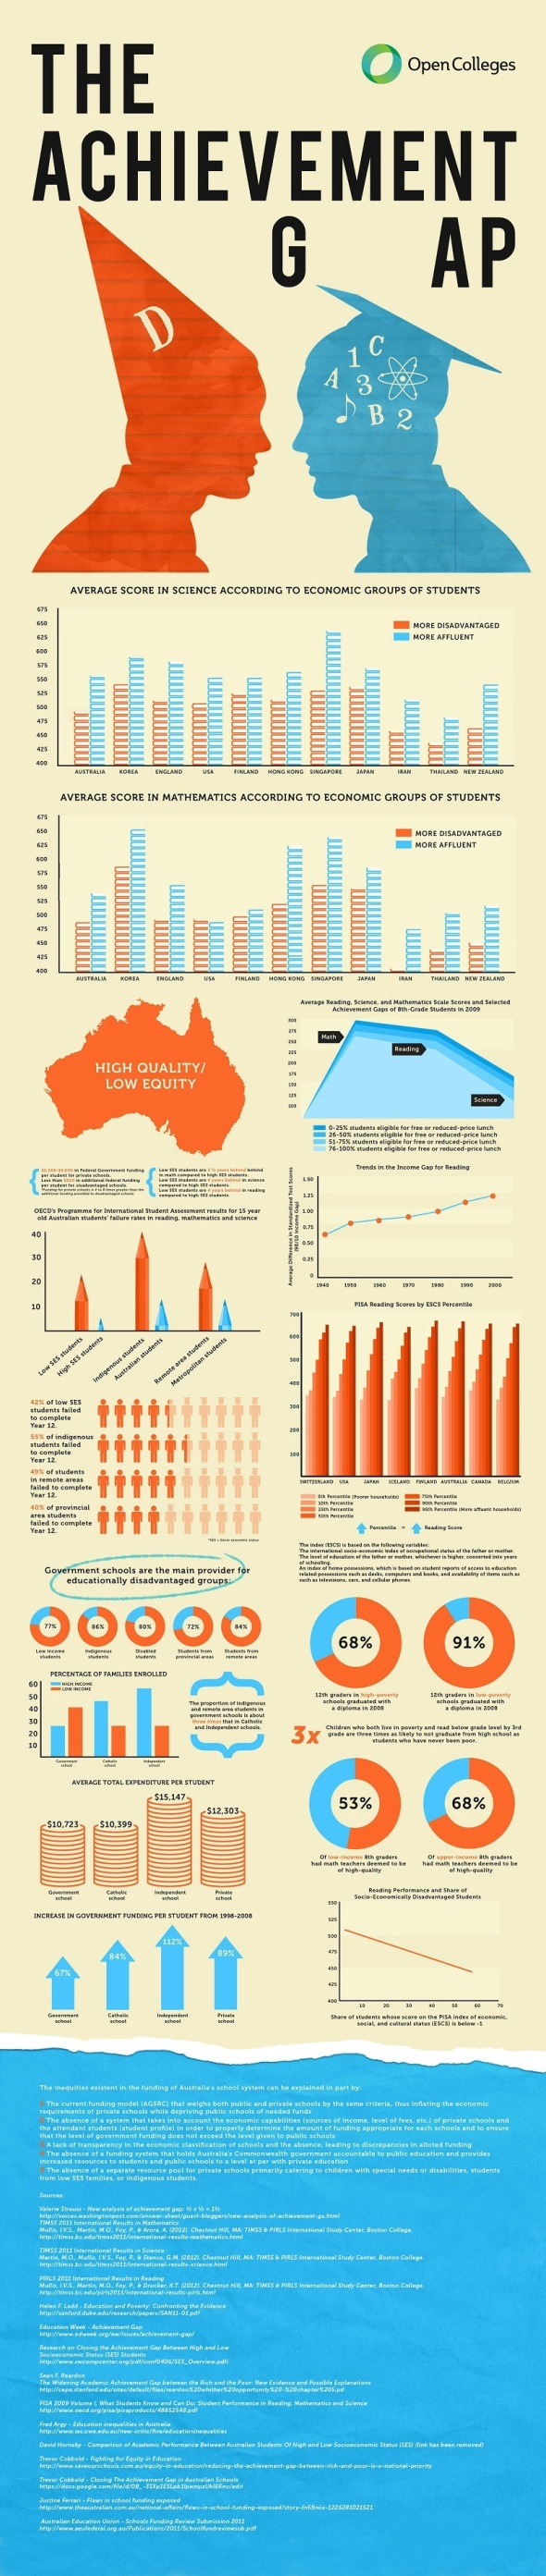 Achievement-Gap-Infographic-2